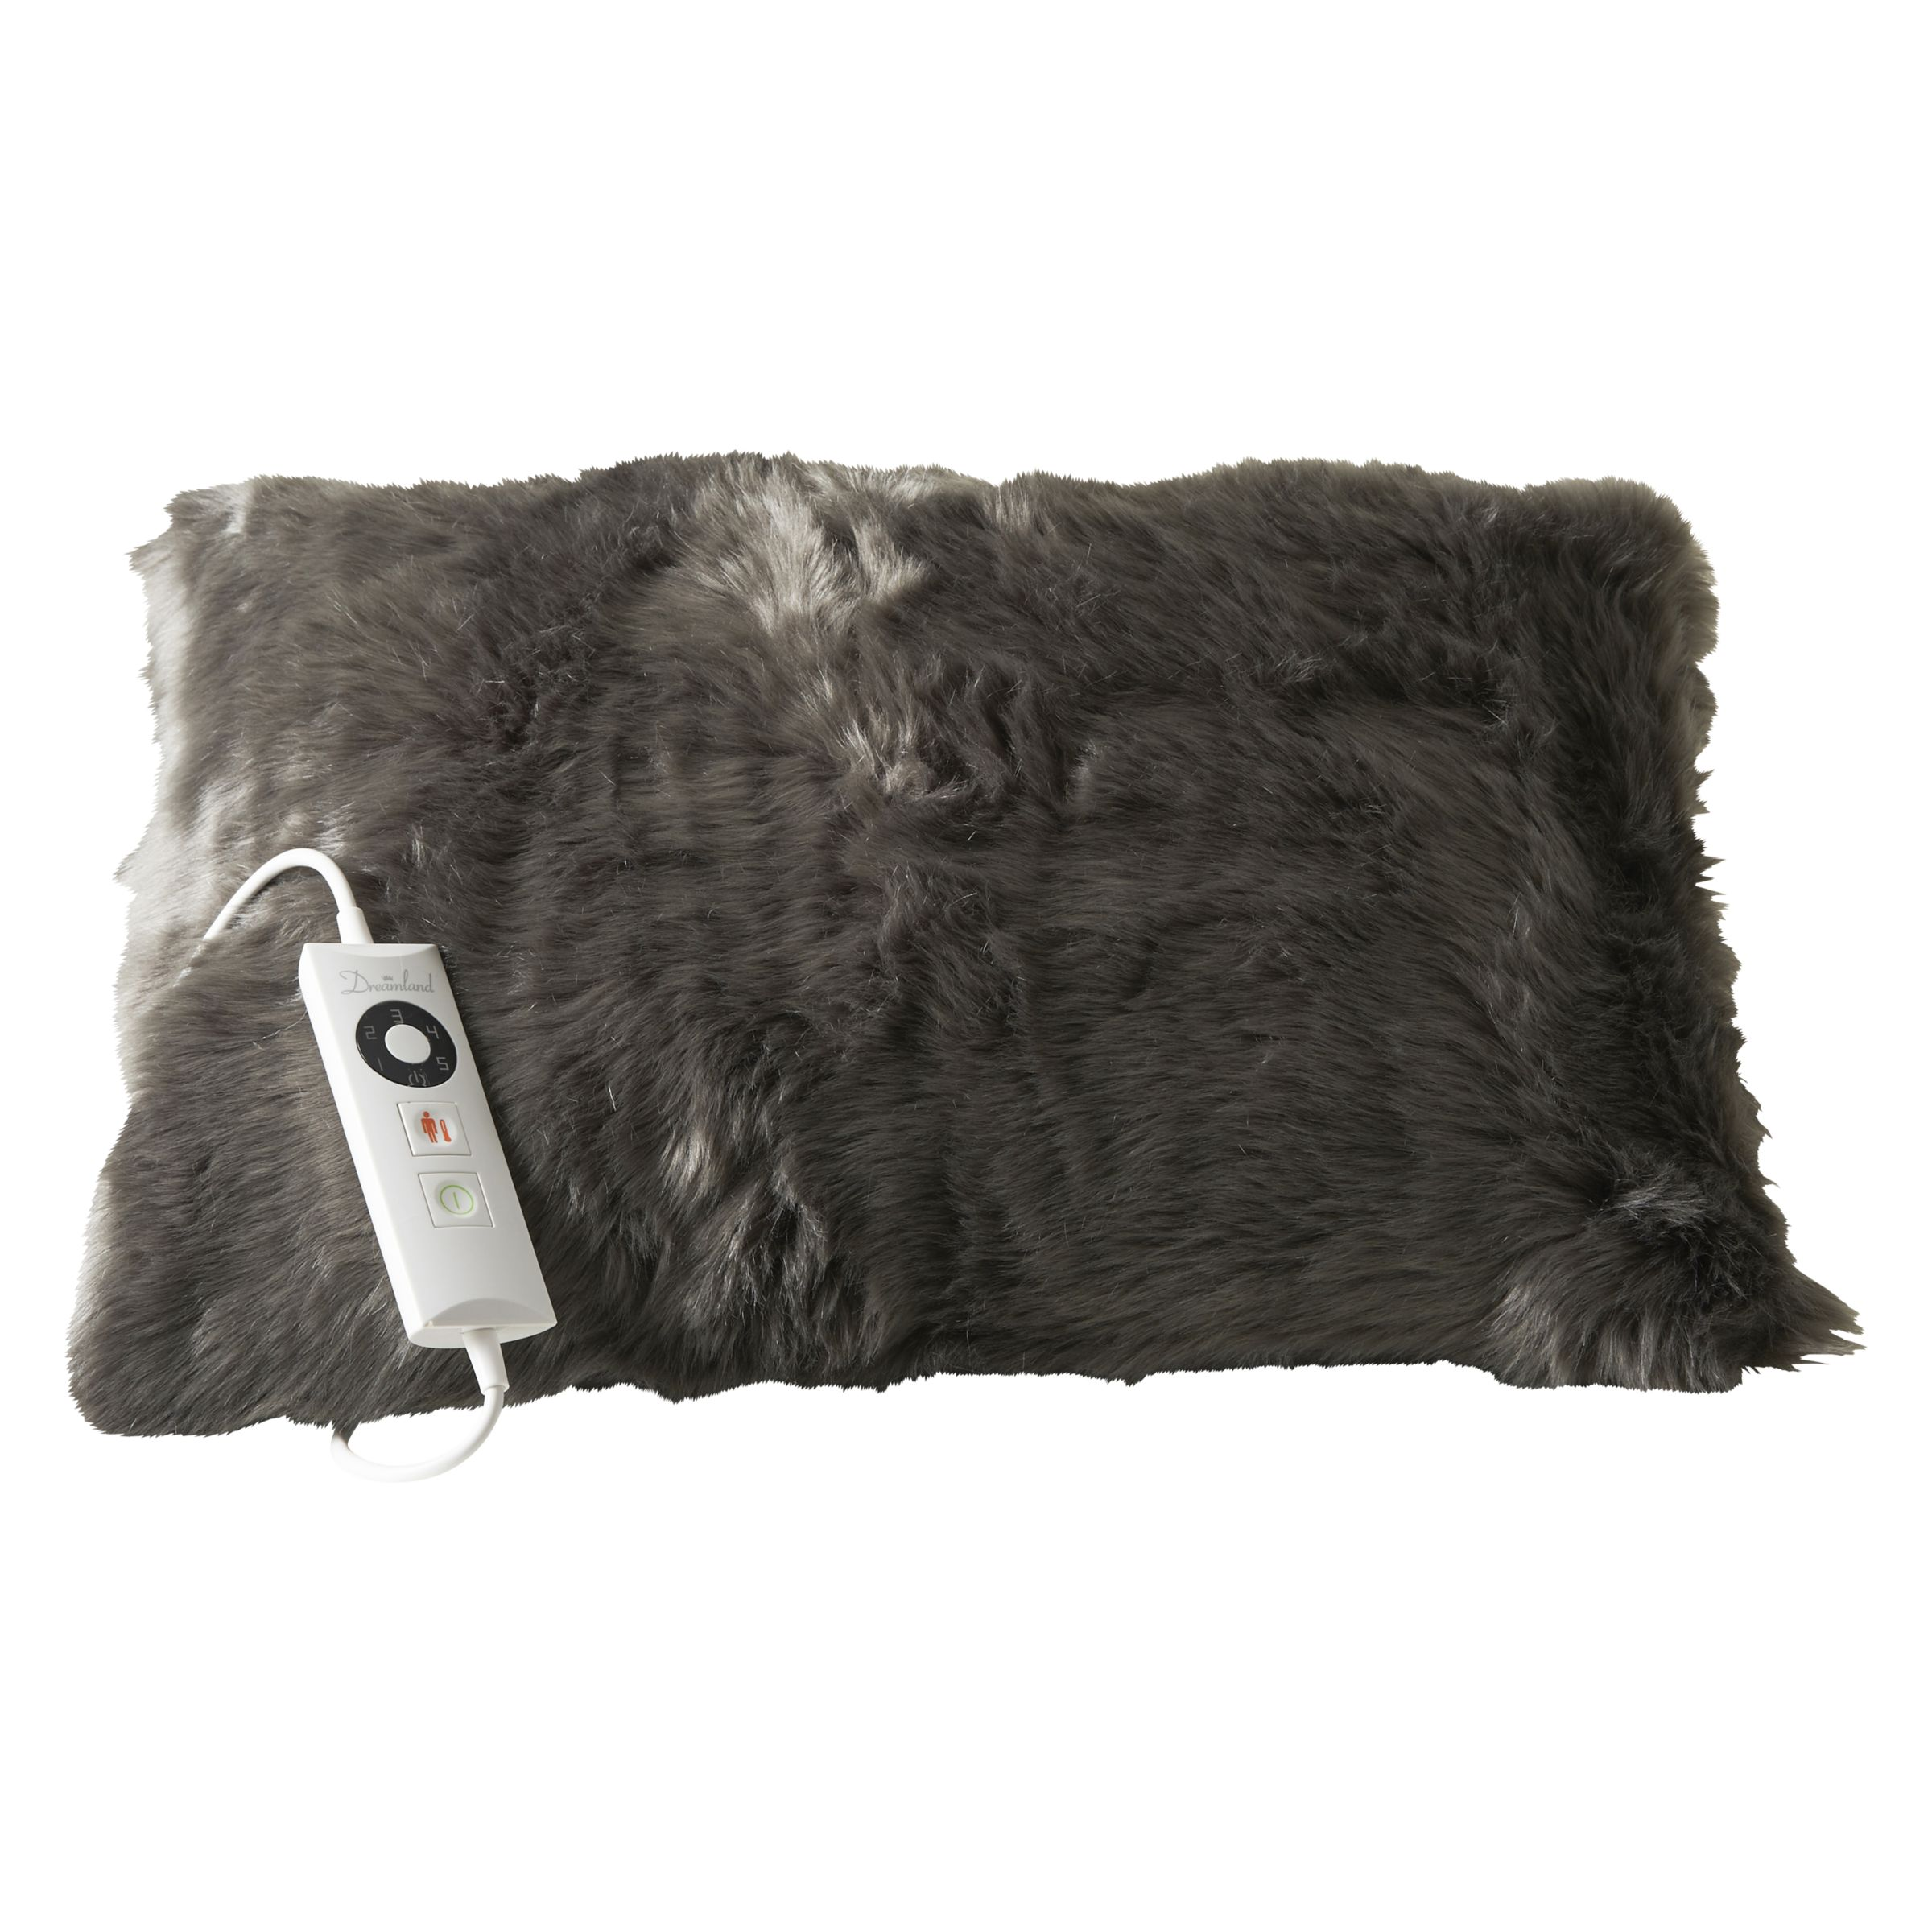 Dreamland Relaxwell Deluxe Faux Fur Heated Cushion